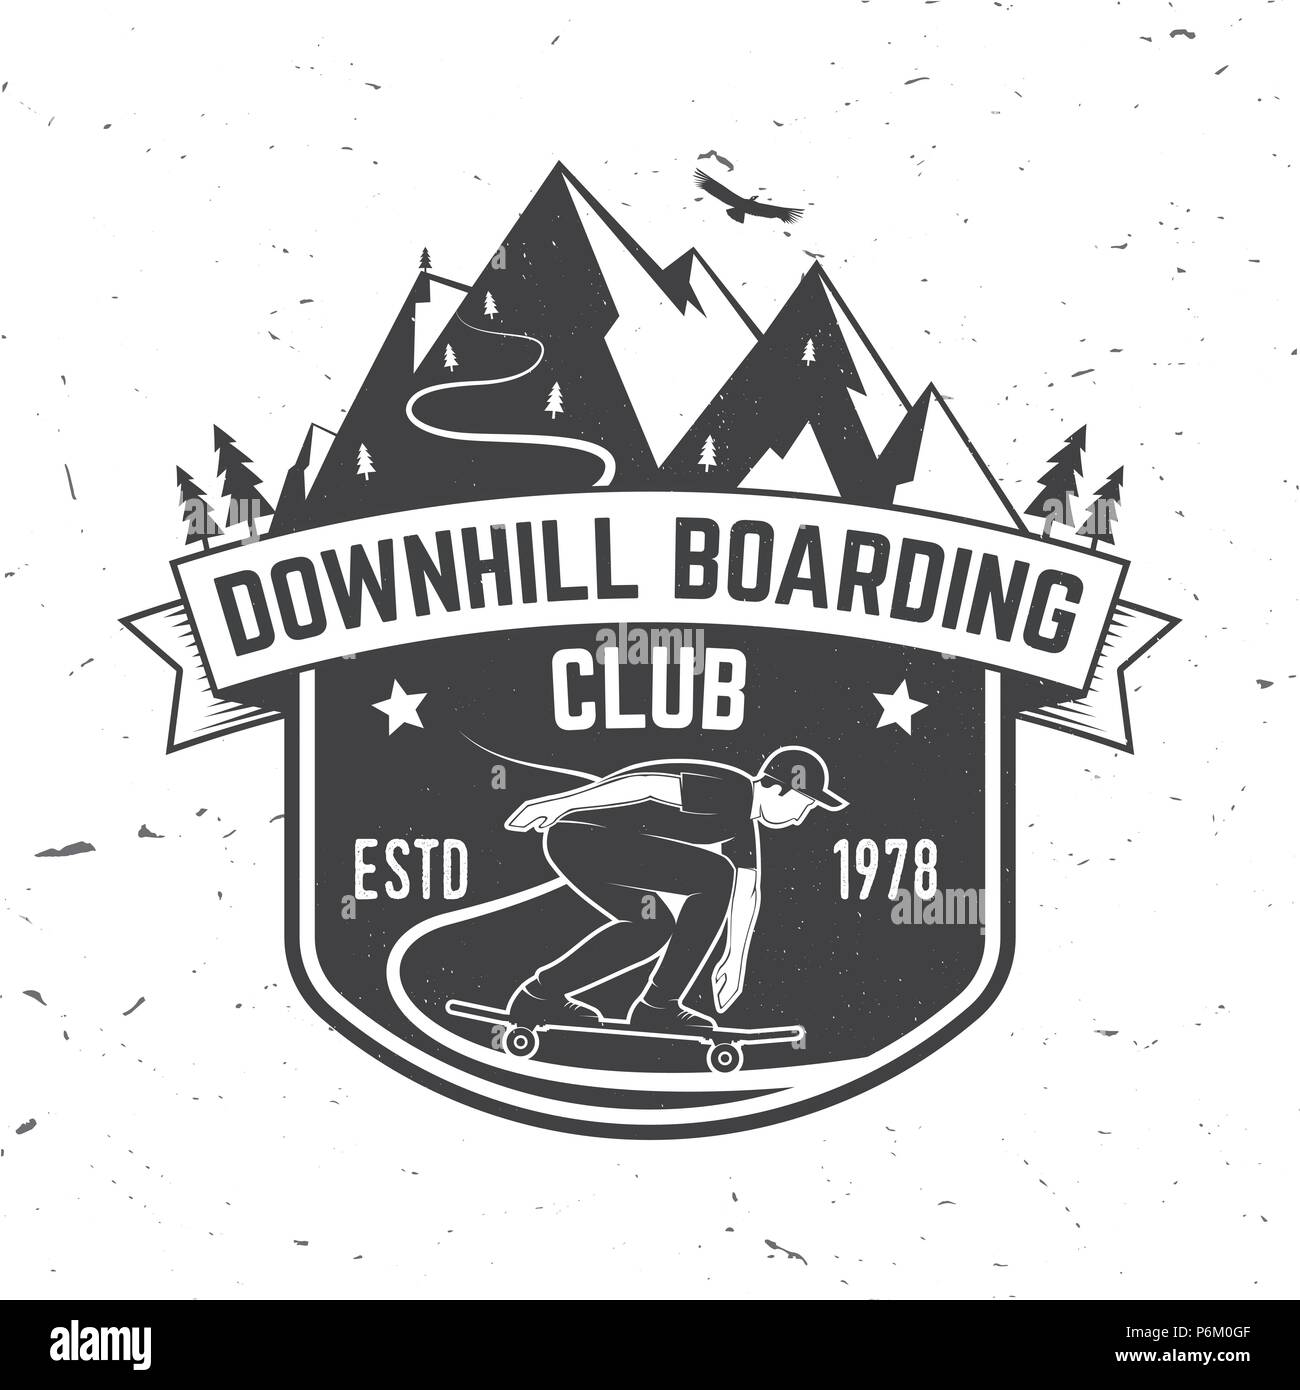 Downhill boarding club badge. Vector illustration. Extreme sport. For skate club emblems, signs and t-shirt design. Skateboard typography design with skateboarder on the longboard and text. Stock Vector